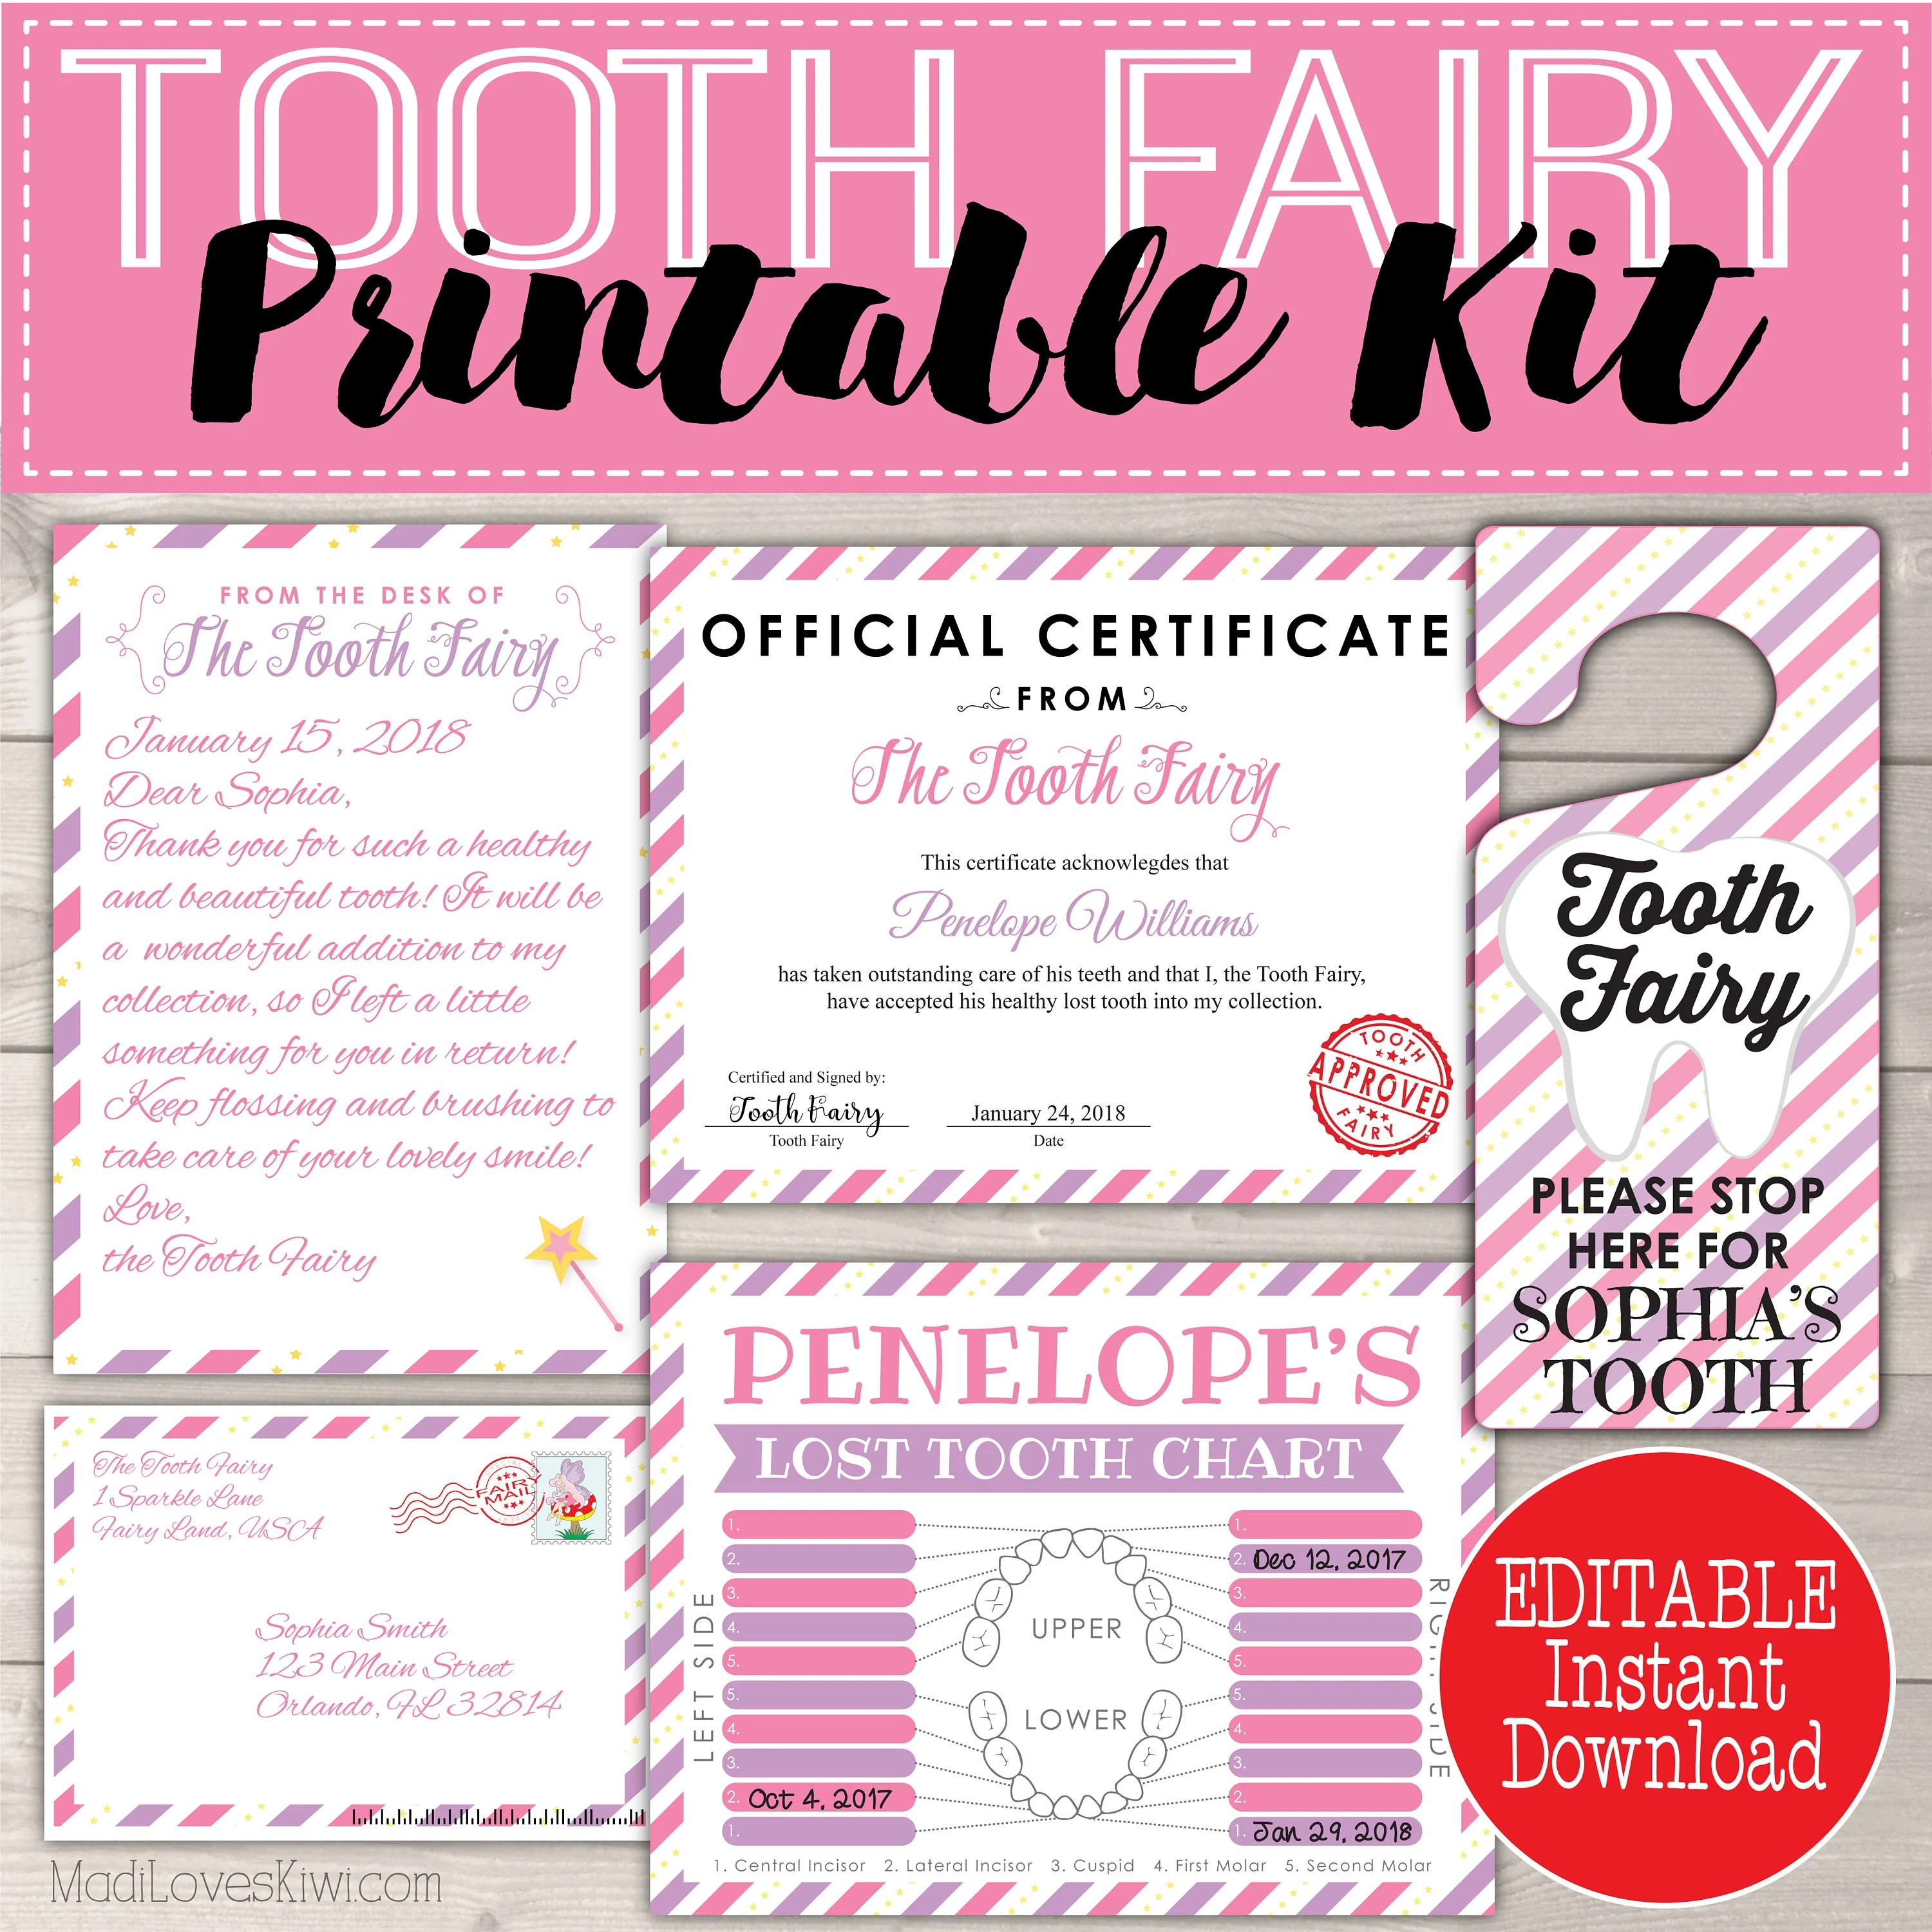 Letter From Tooth Fairy Letters Kit Teeth Tracker PDF